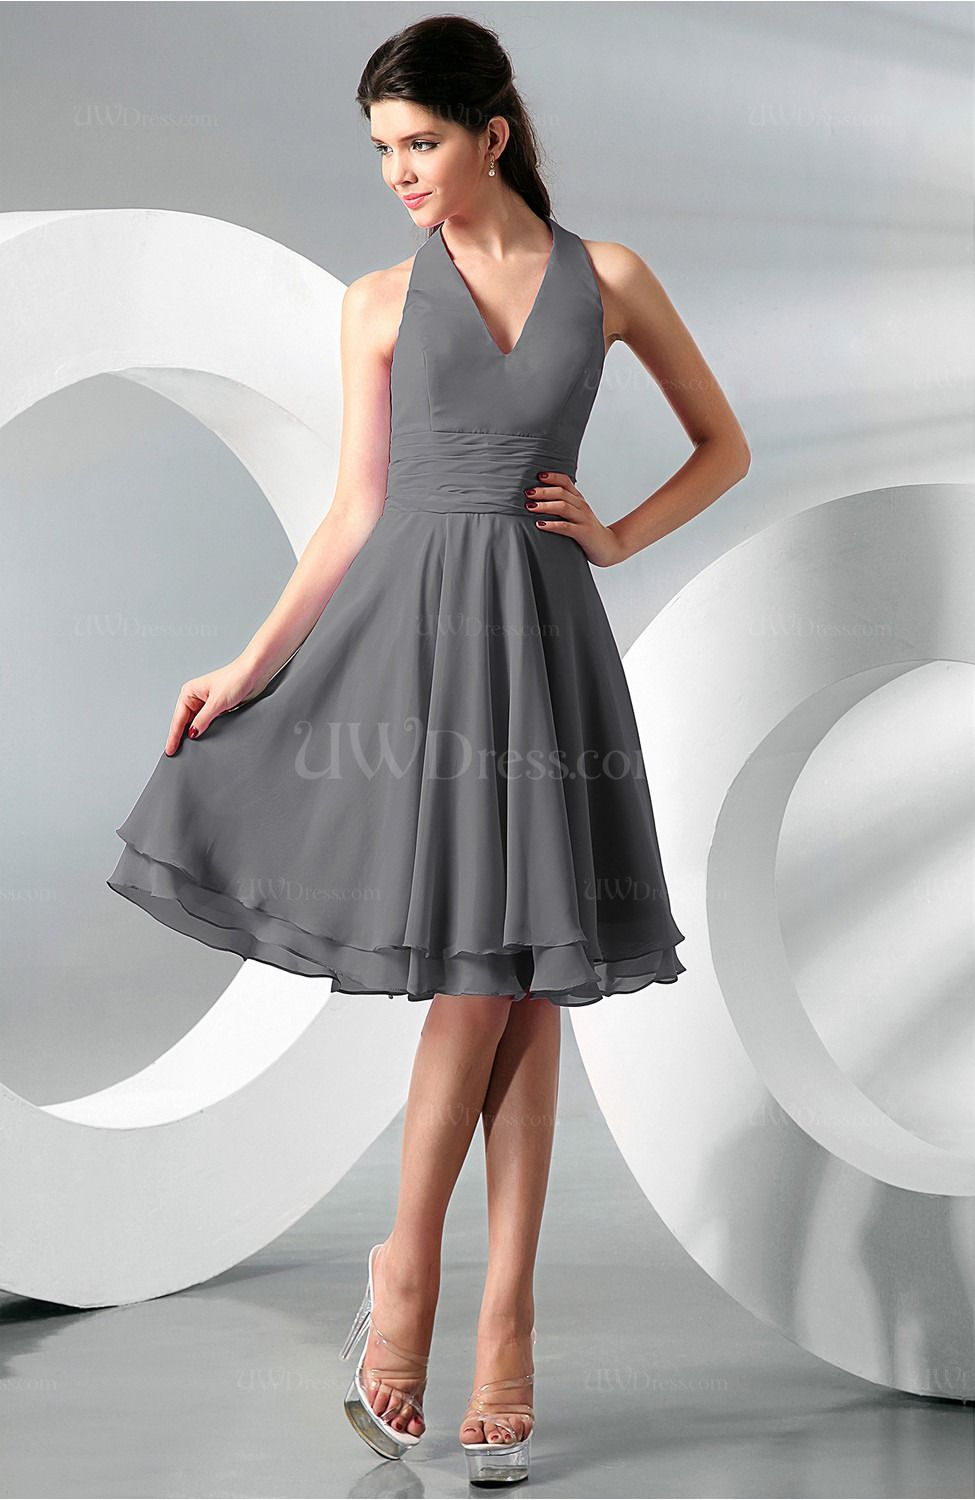 Bridesmaid dresses short gray google search styles i love bridesmaid dresses short gray google search ombrellifo Image collections